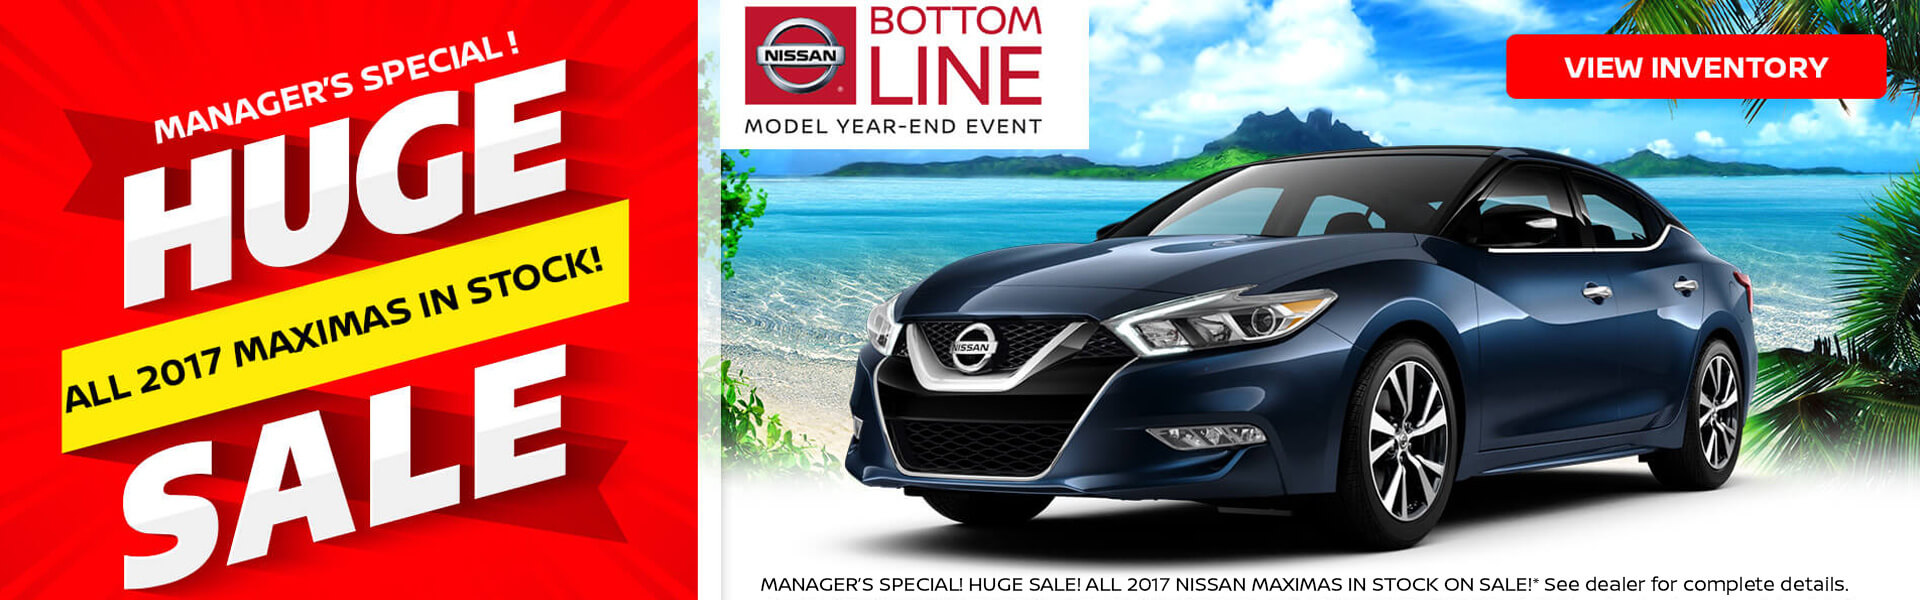 Manager Special on 2017 Nissan Maxima